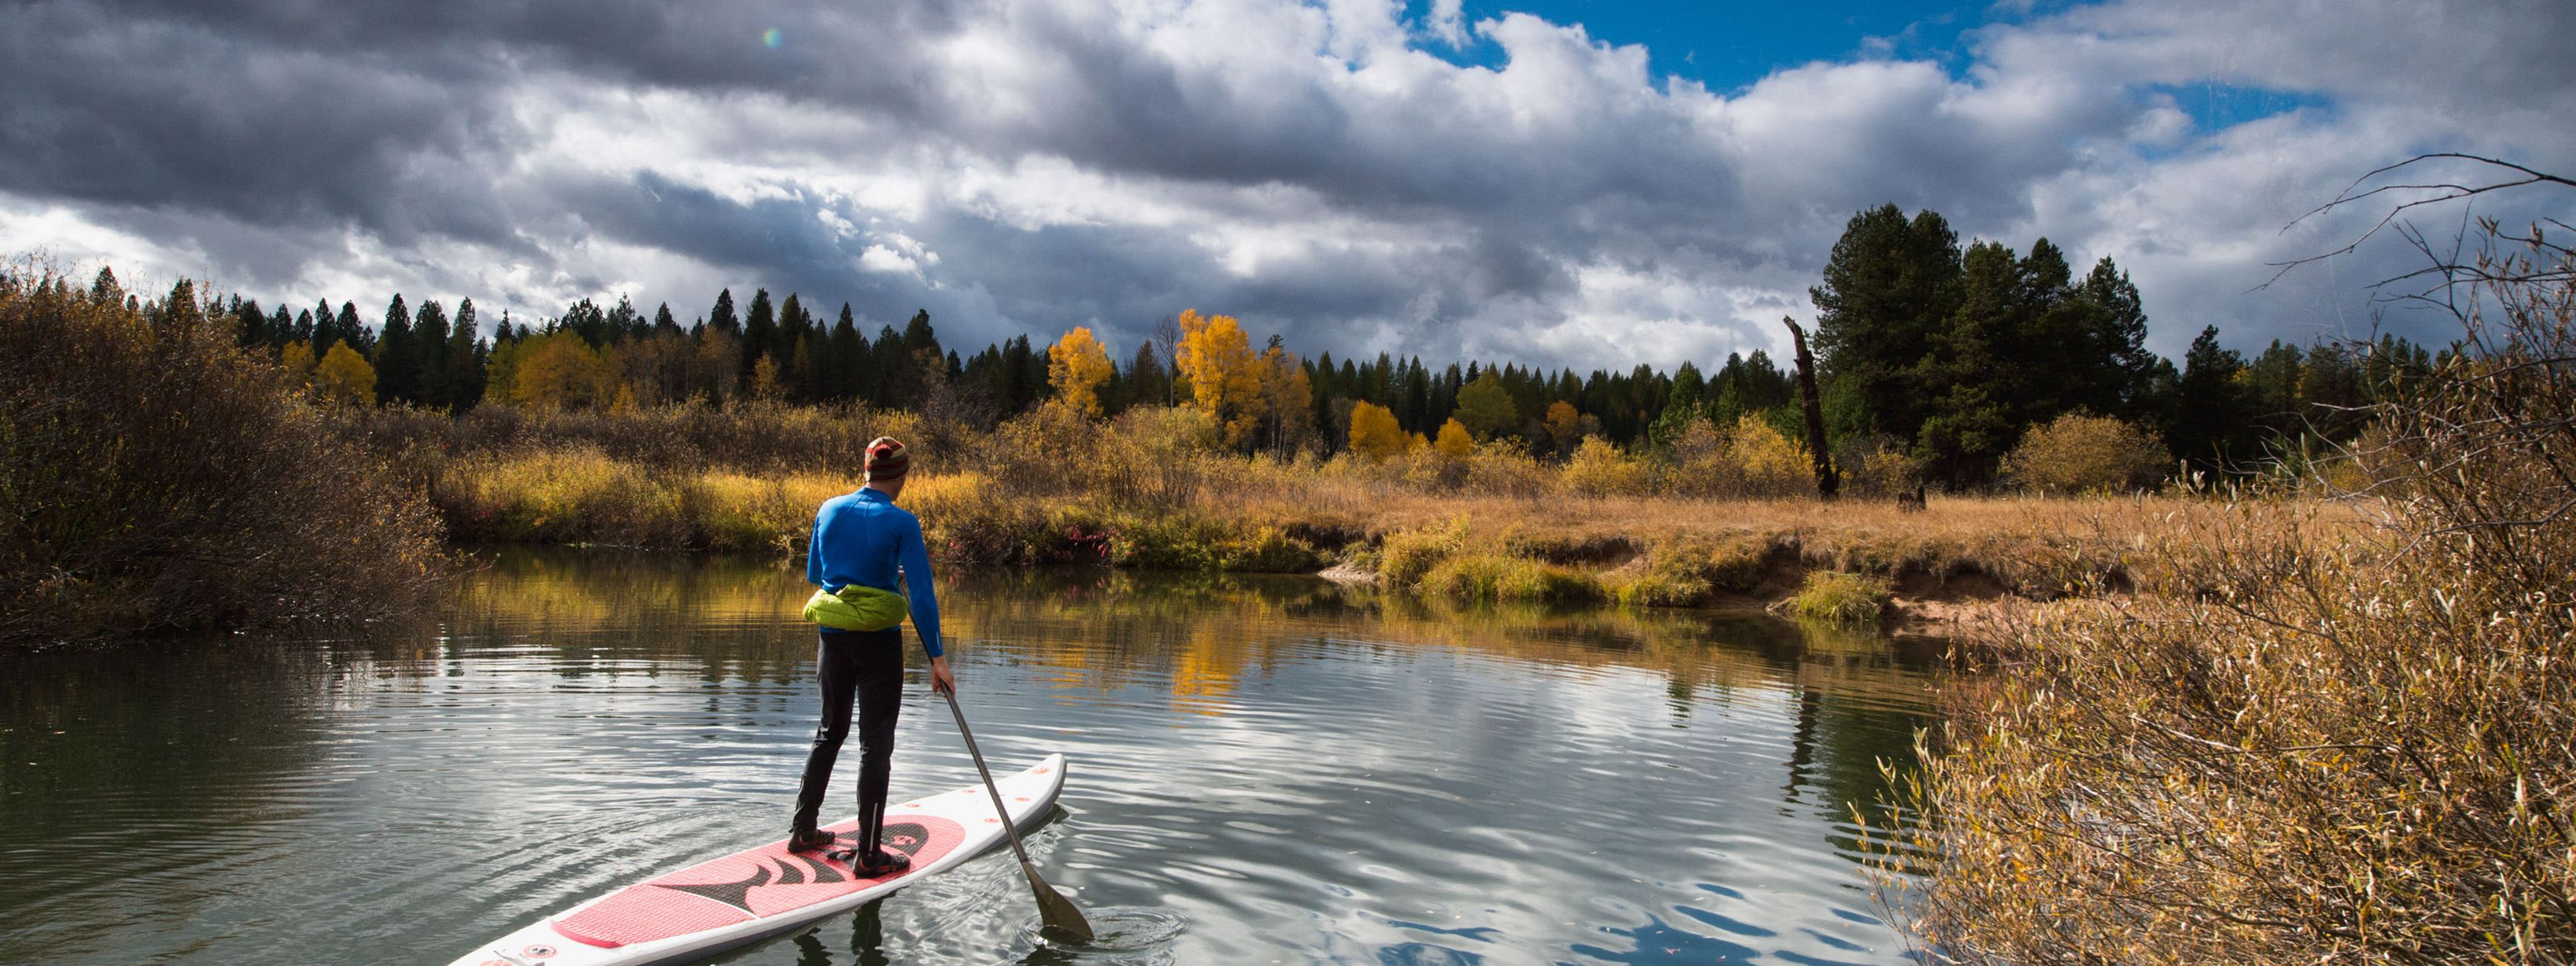 Brandon French paddles along the Clearwater River Canoe trail, Montana.